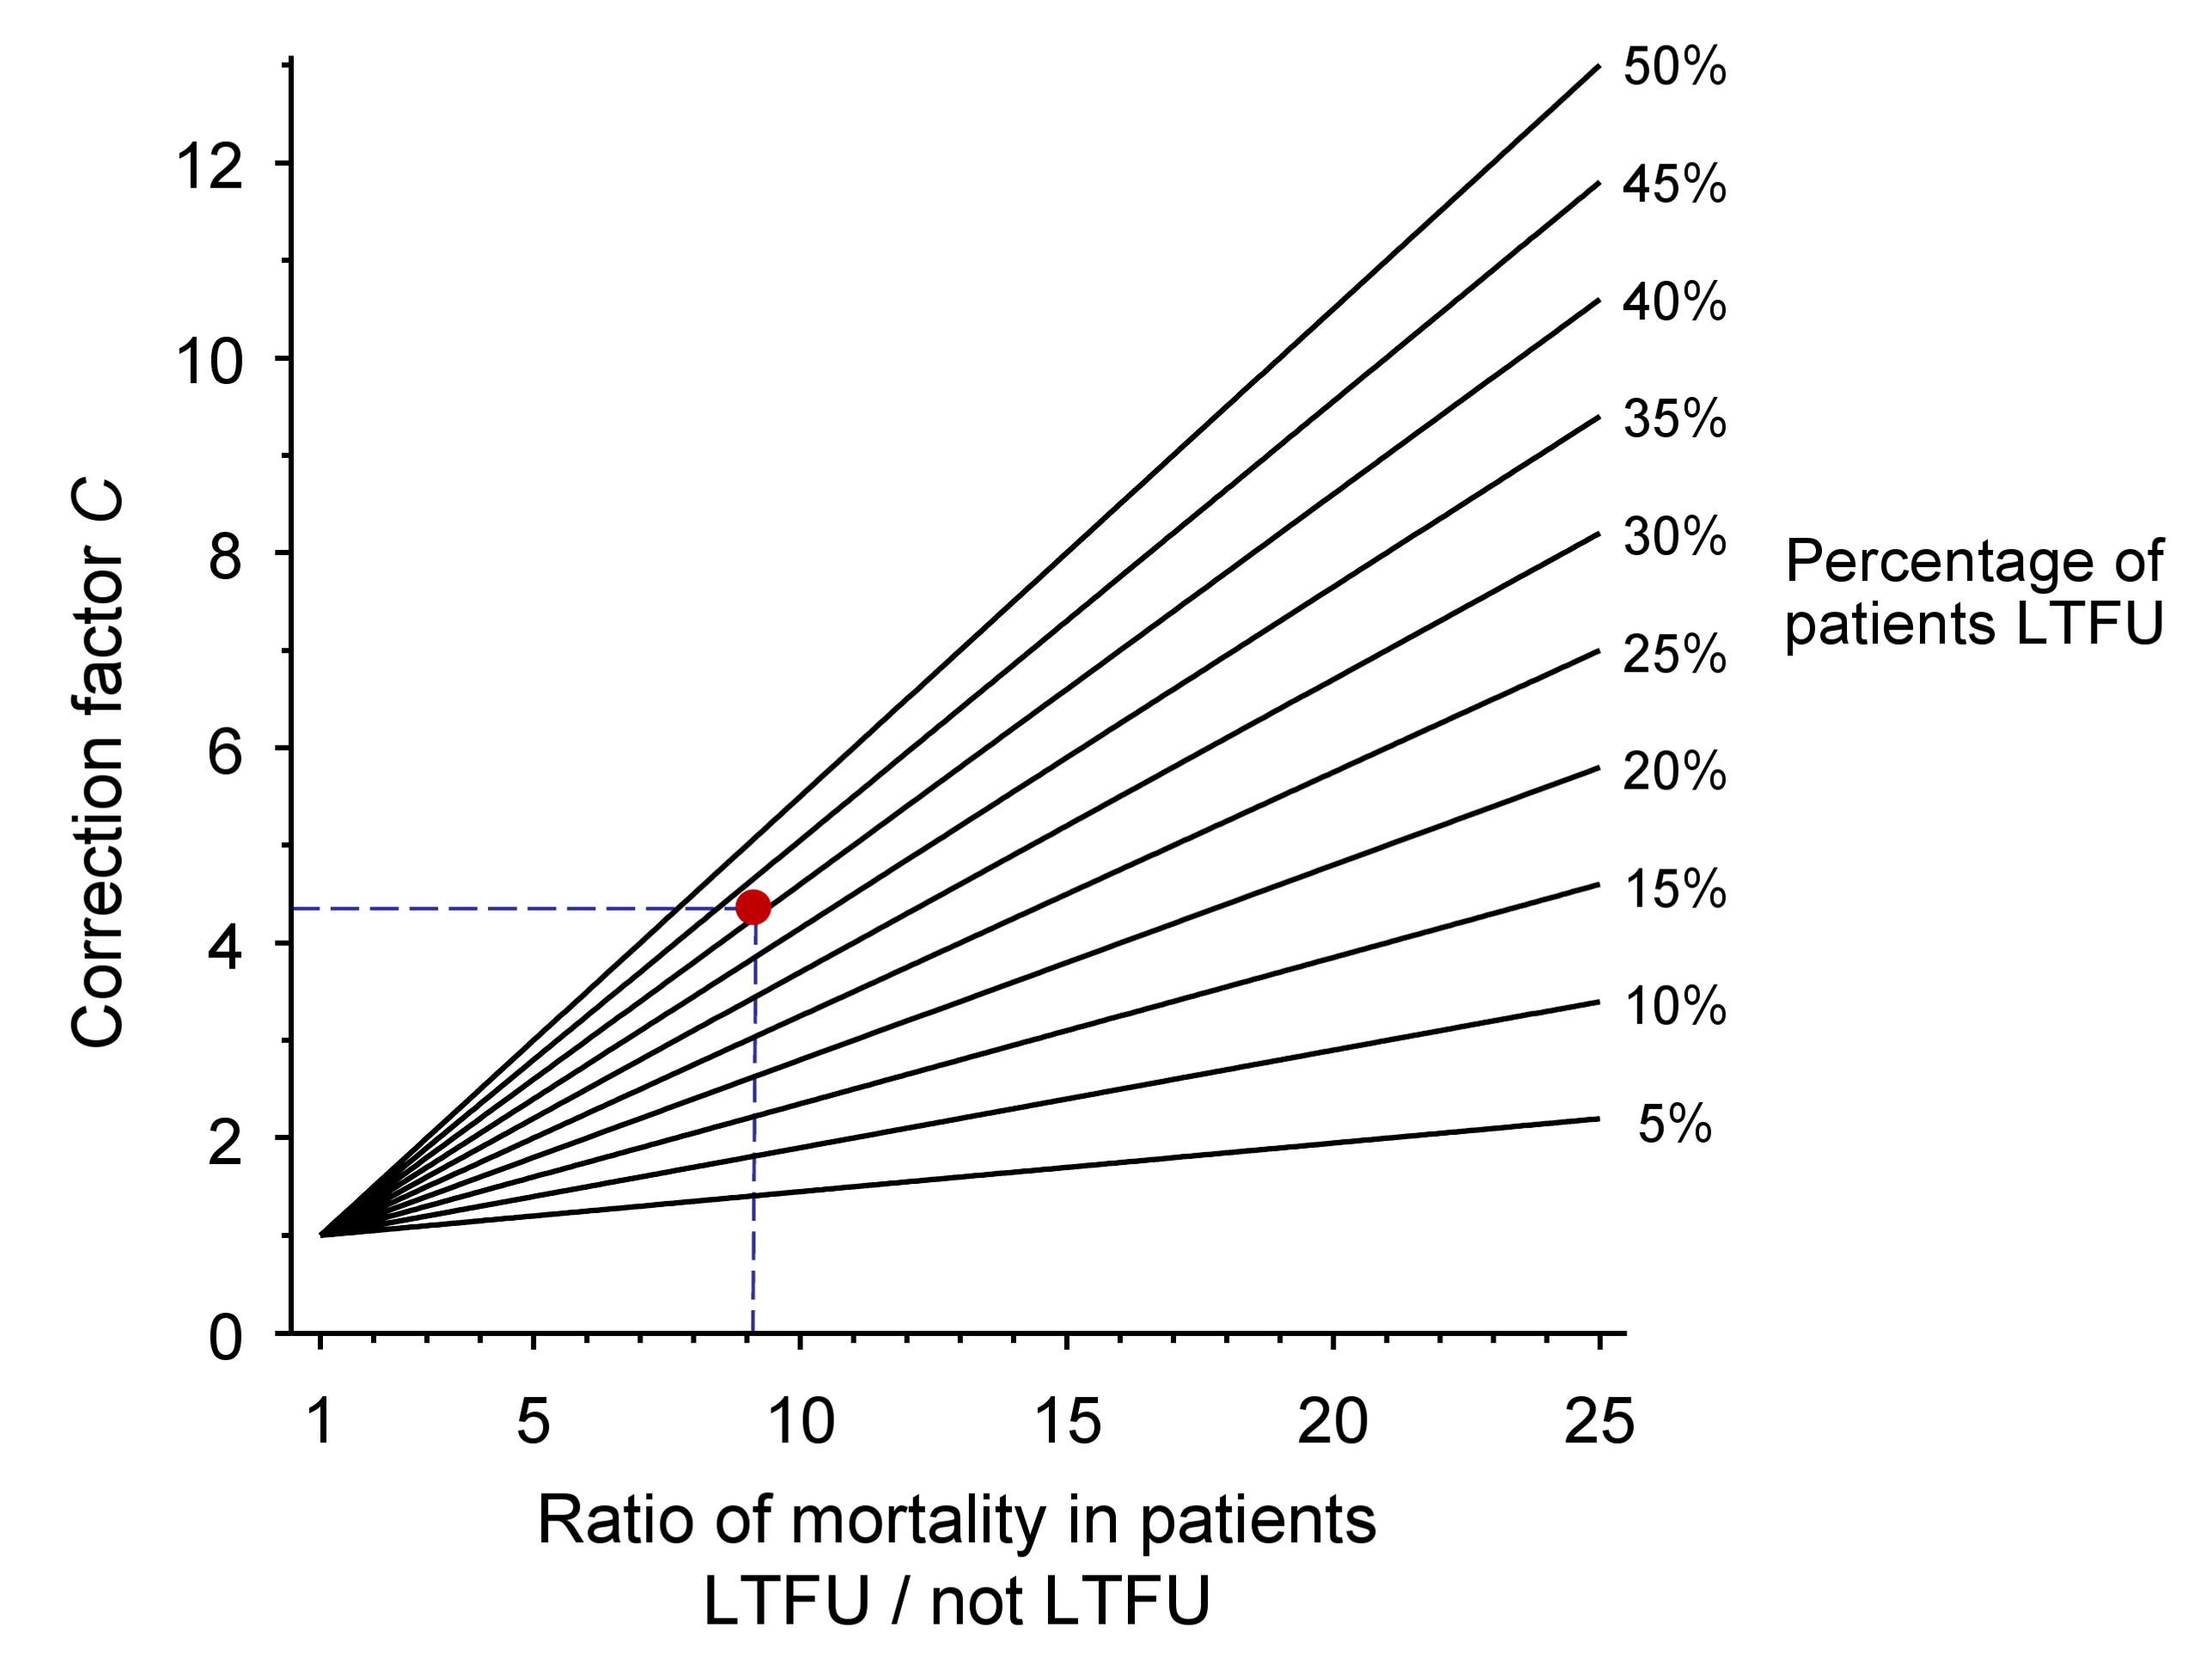 Nomogram for obtaining correction factors to adjust programme-level mortality estimates, based on the observed mortality among patients not lost to follow-up, the observed proportion of patients lost and an estimate of mortality among patients lost.